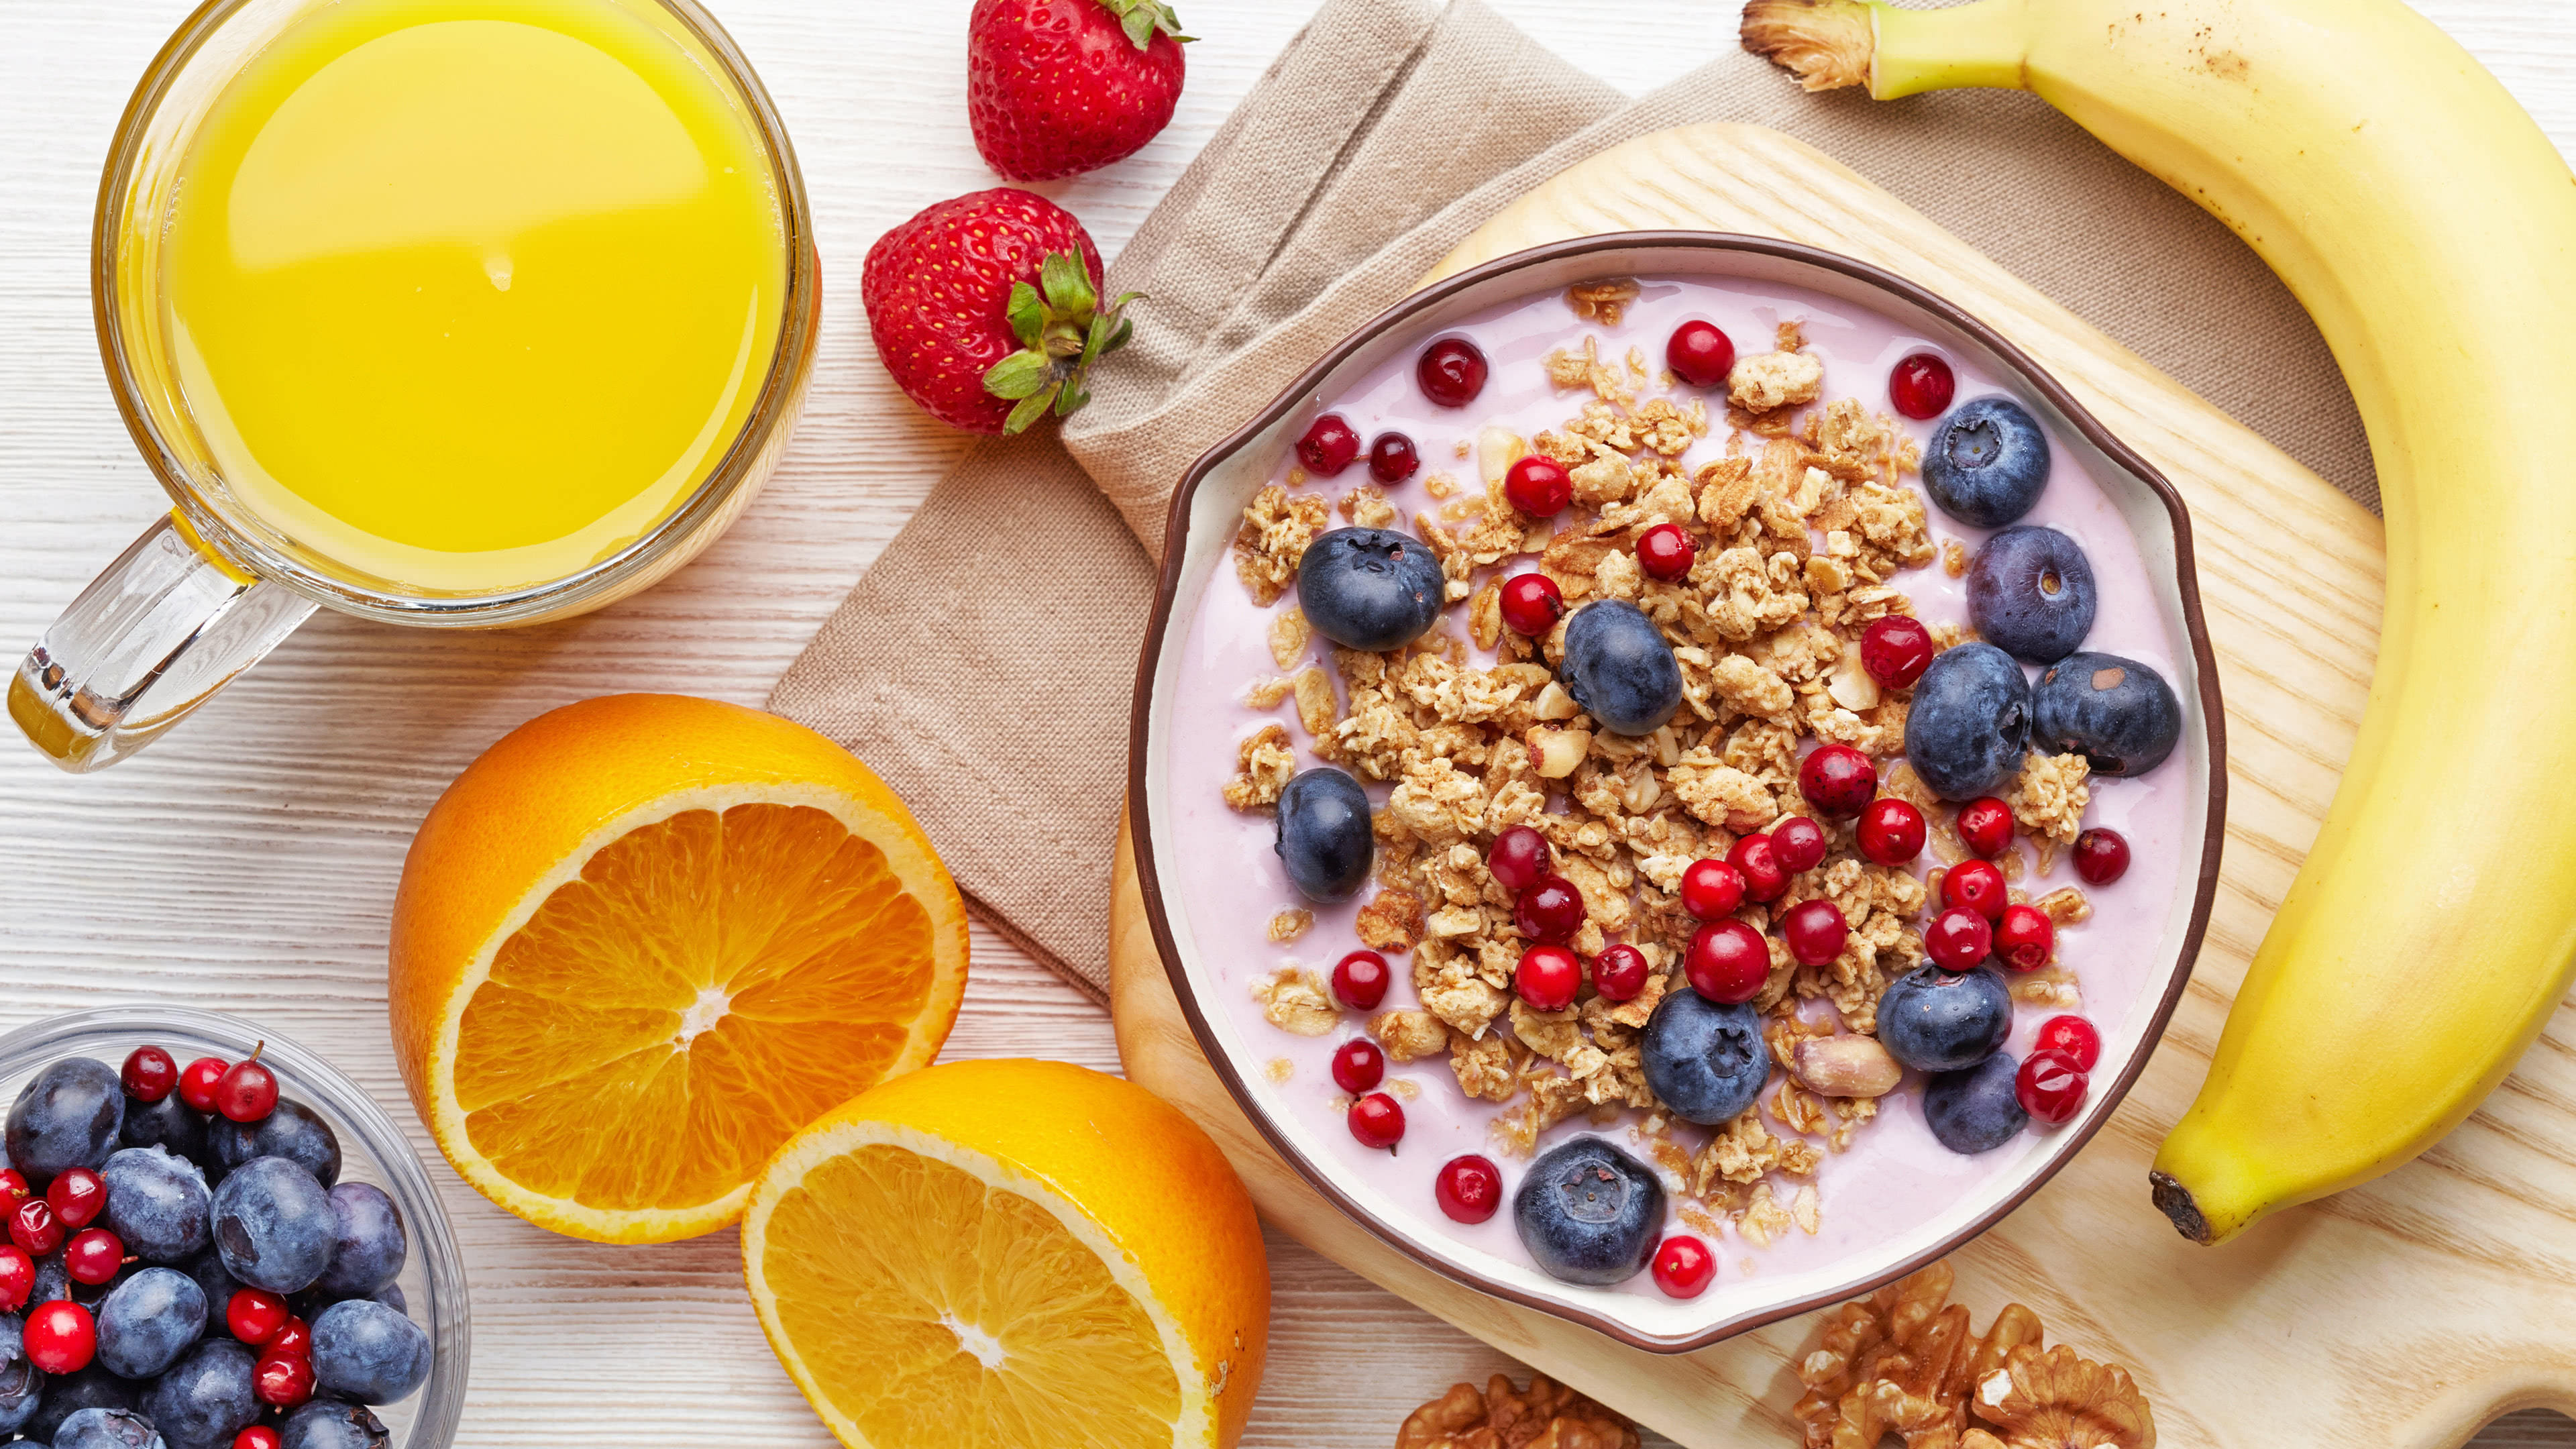 fruit and cereal uhd 4k wallpaper